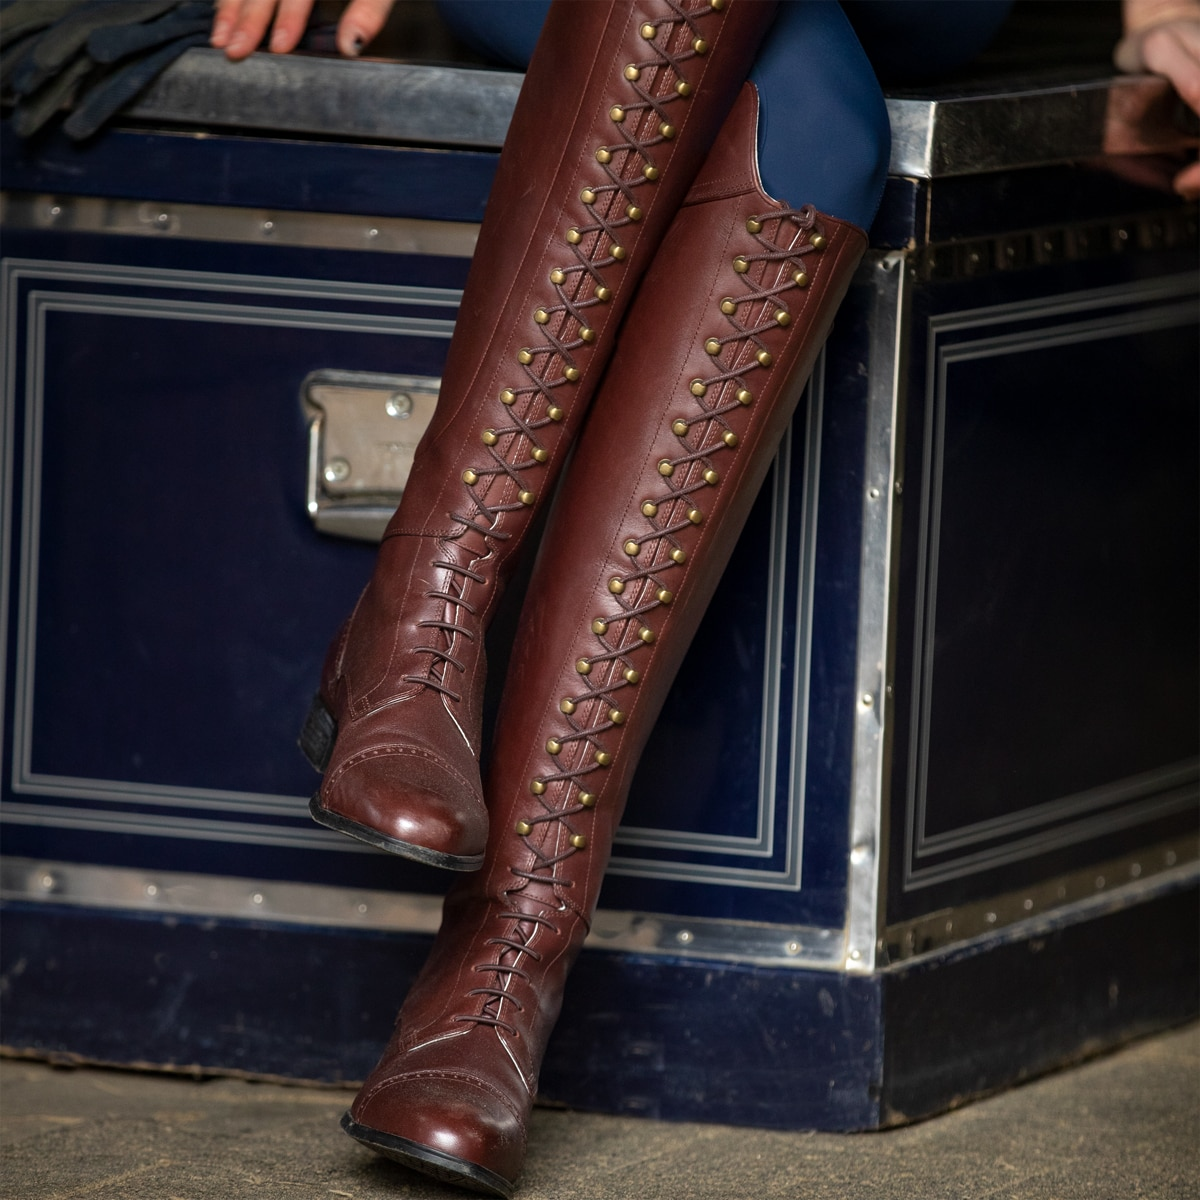 1a82a8bd963 Ariat Capriole Lace Up Dressage Boot - Mahogany